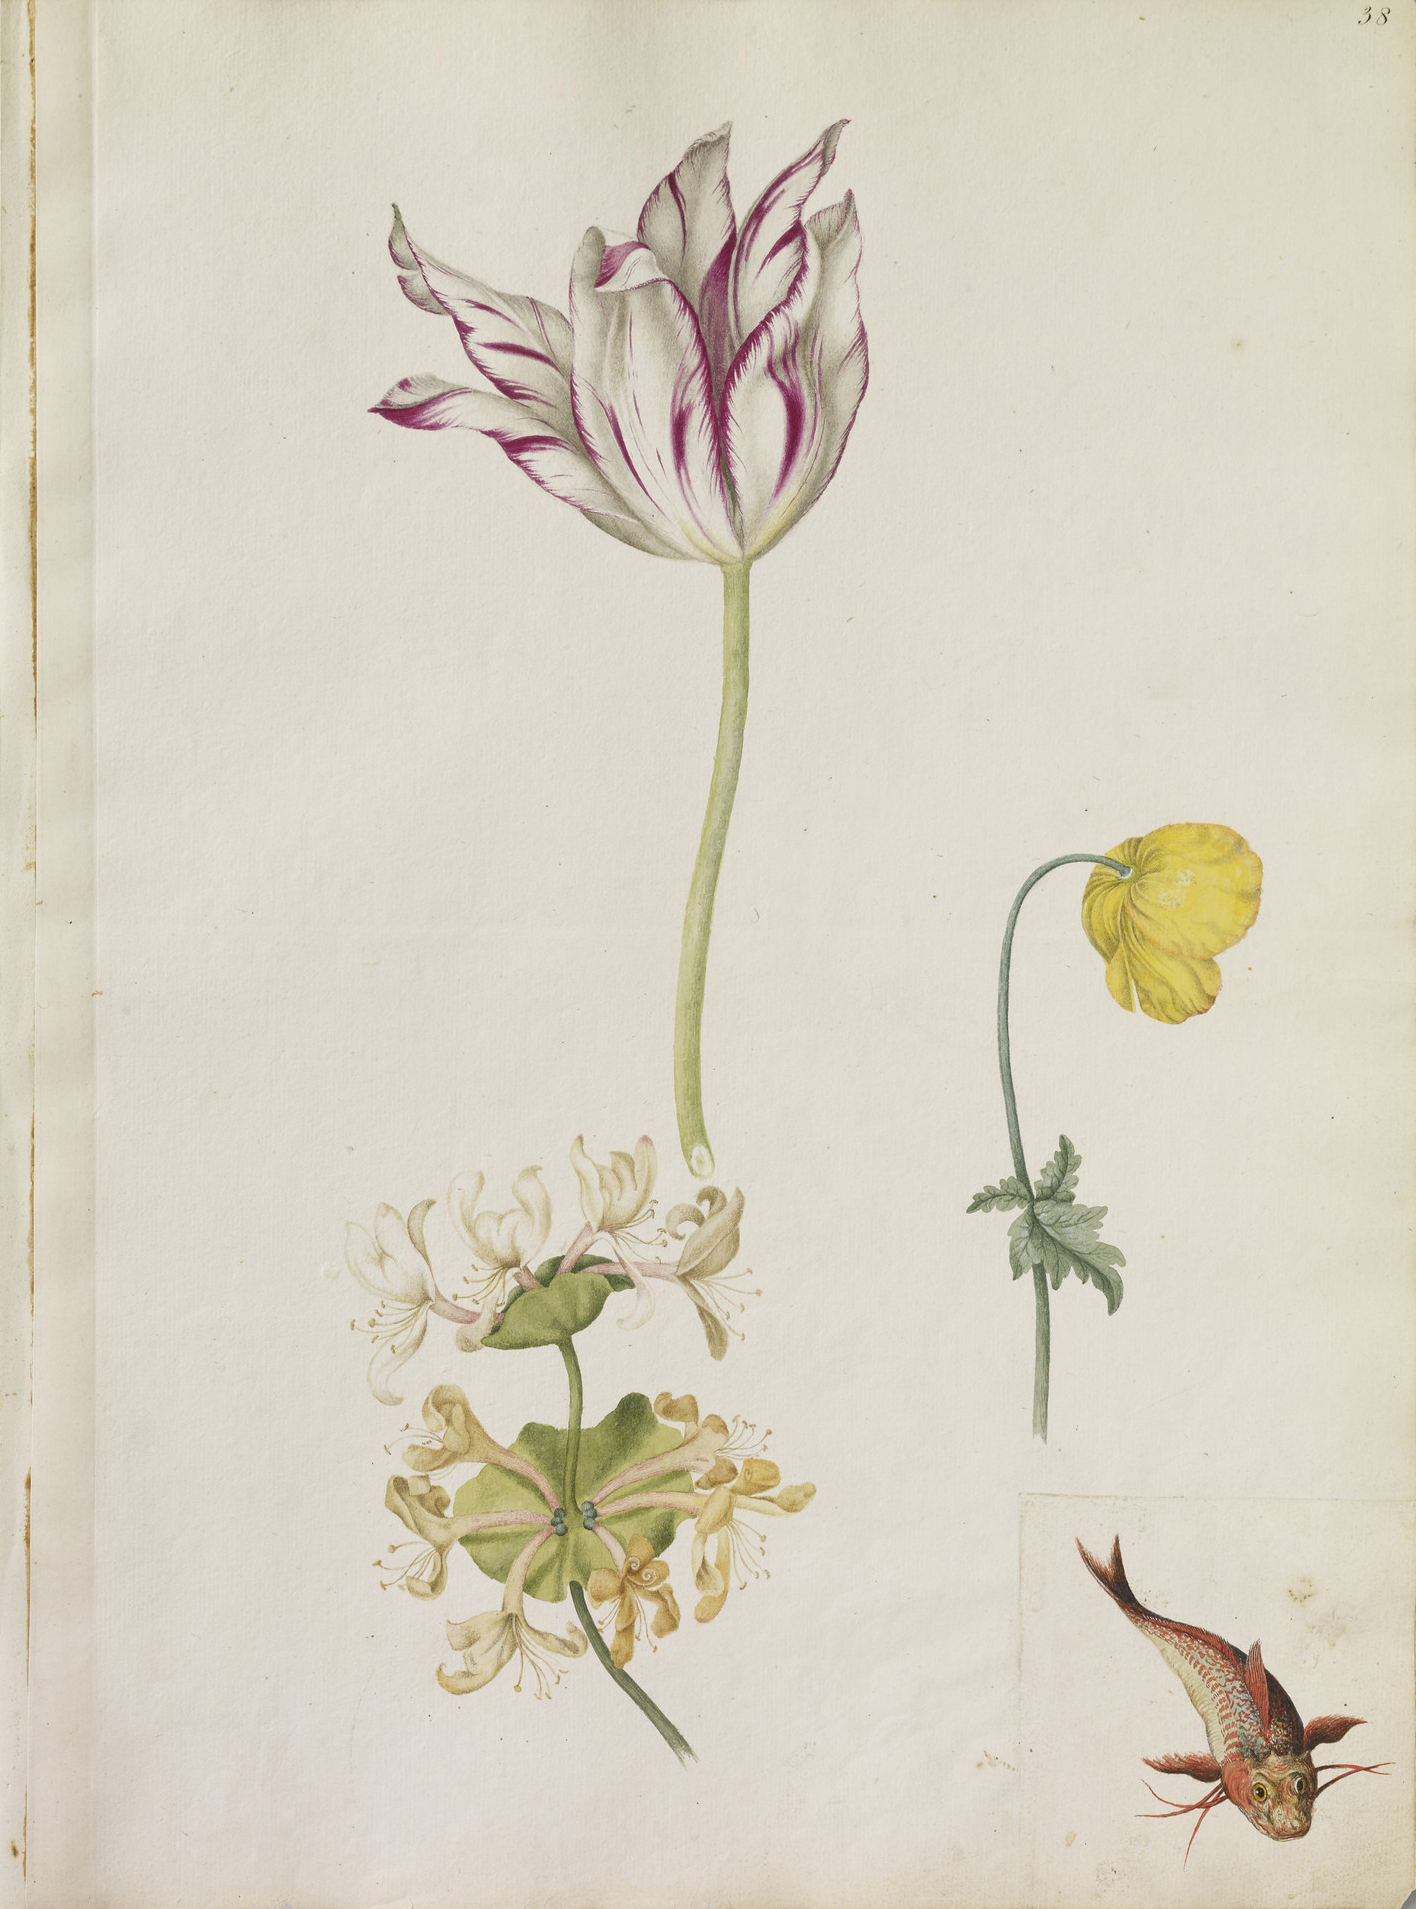 A striped Tulip, a sprig of Honeysuckle, a yellow poppy and also a Minor Fish (pasted on).